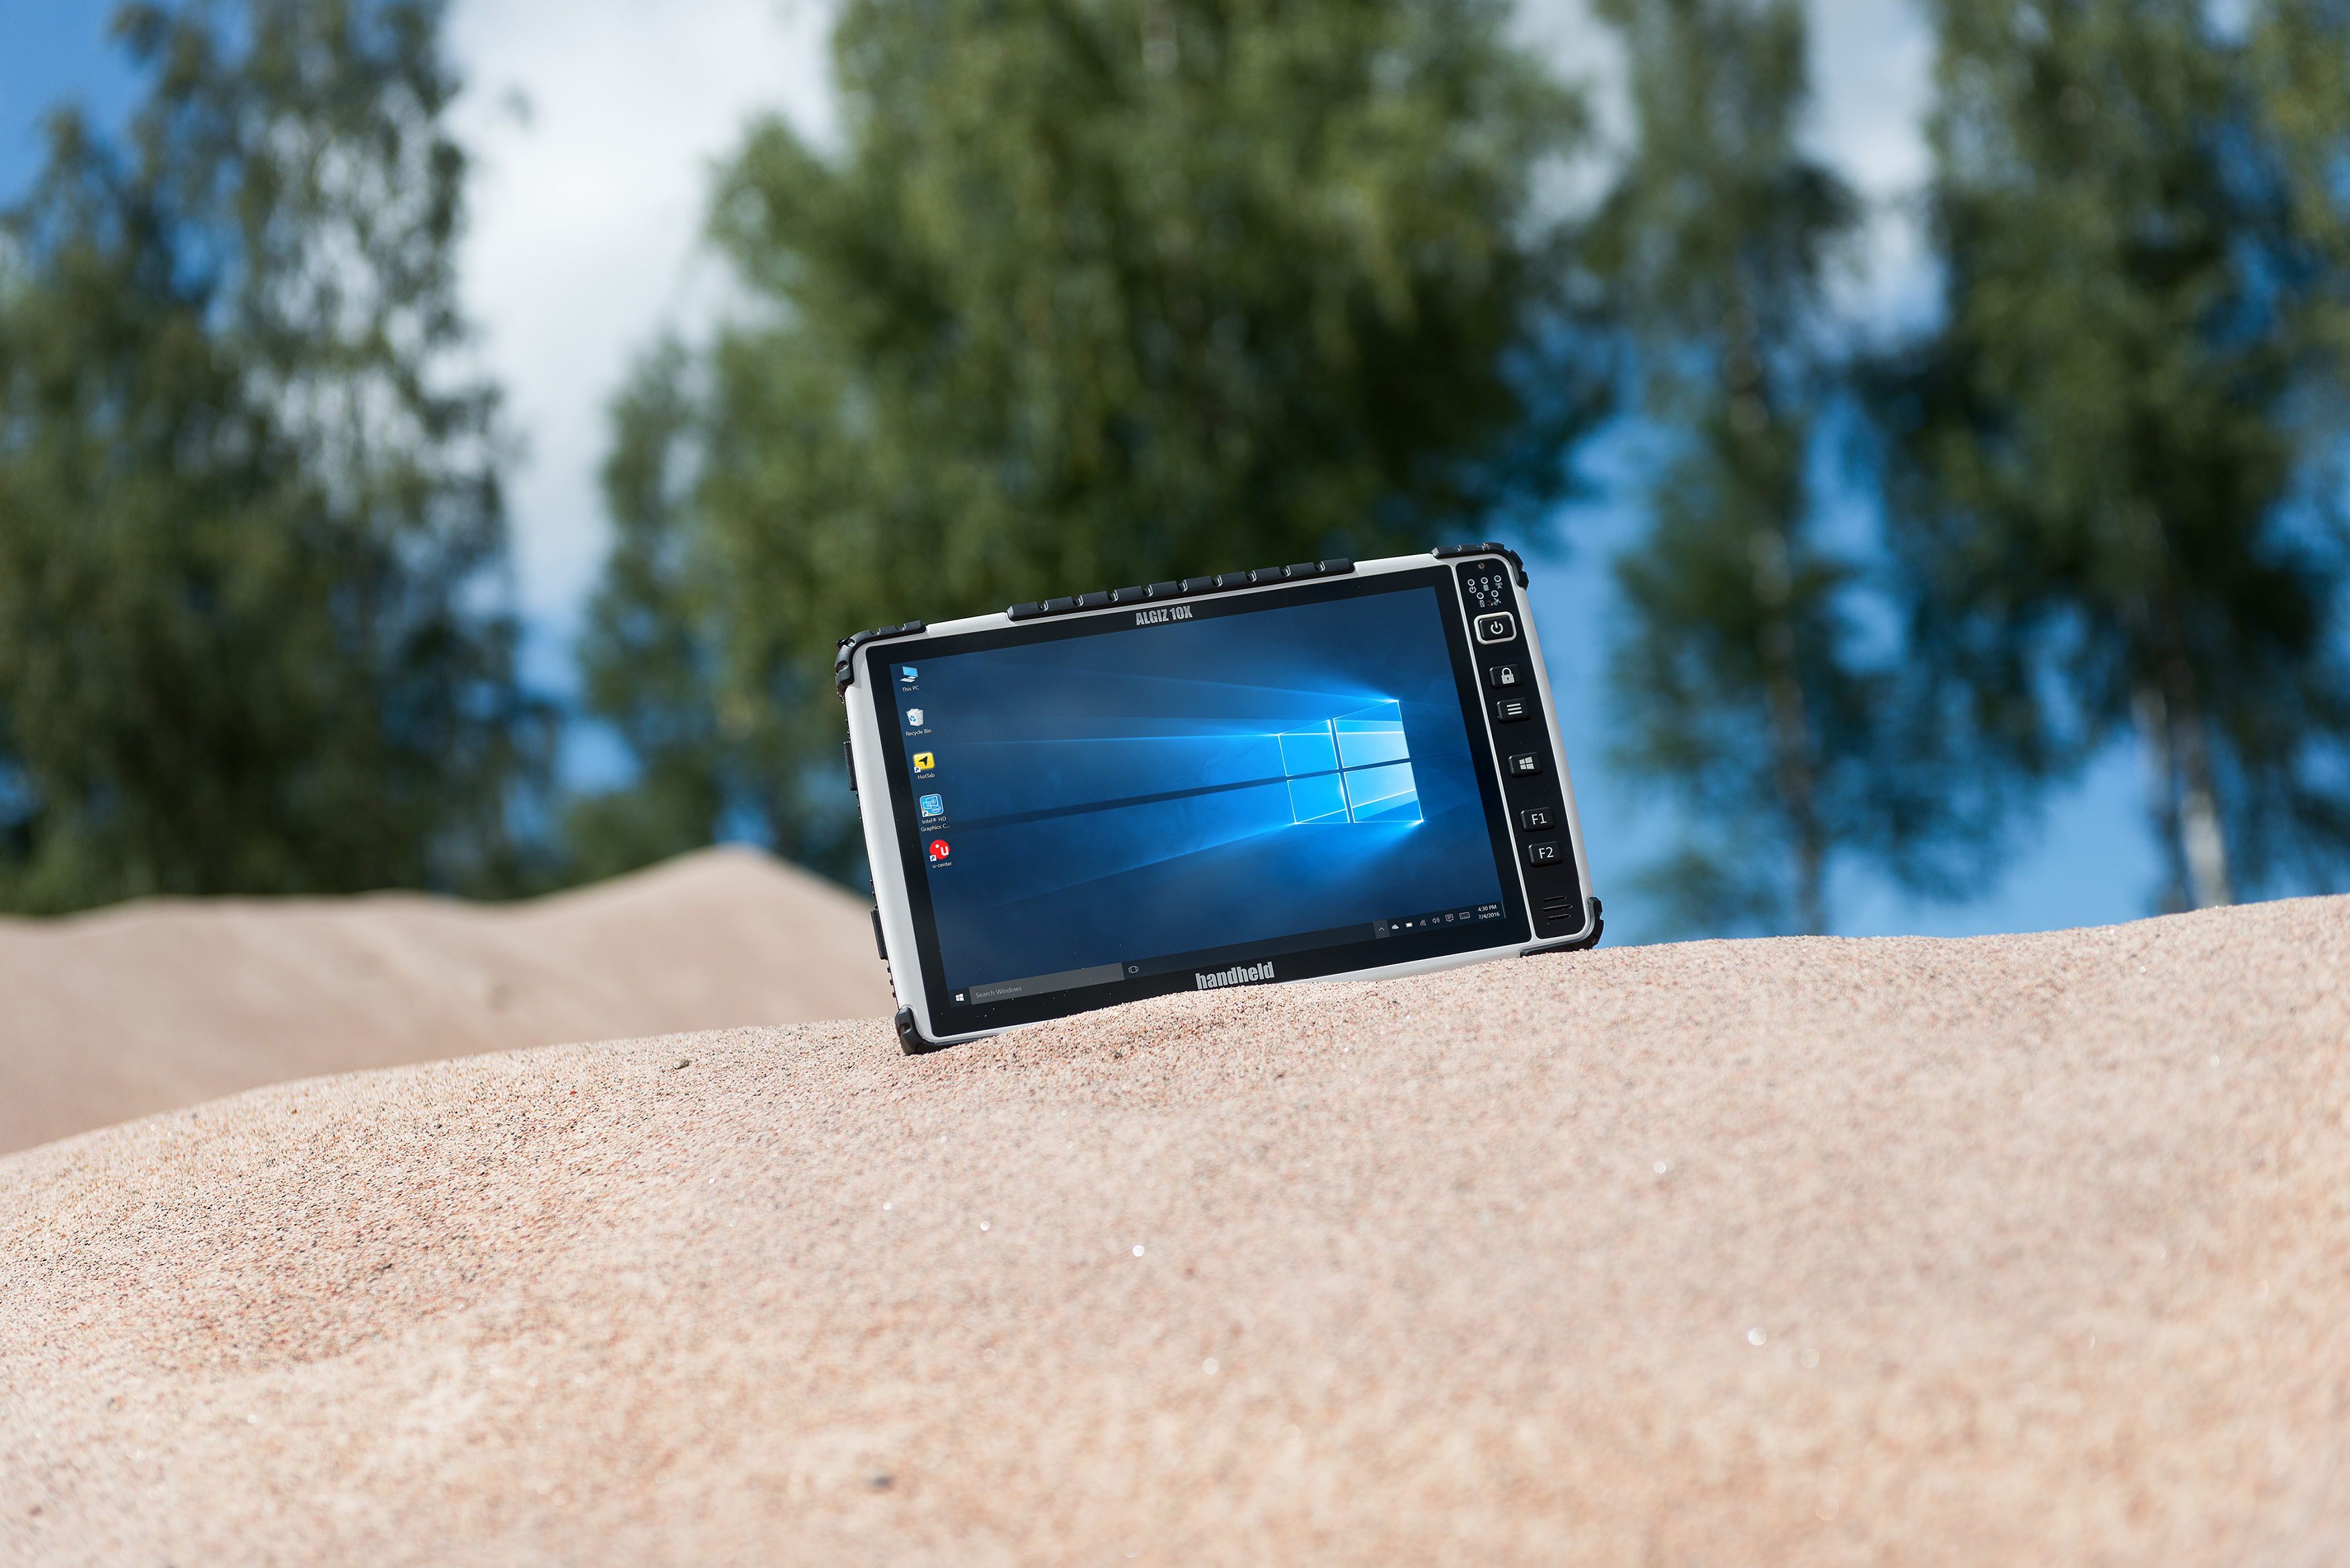 Algiz-10X-capacitive-rugged-tablet-screen.jpg